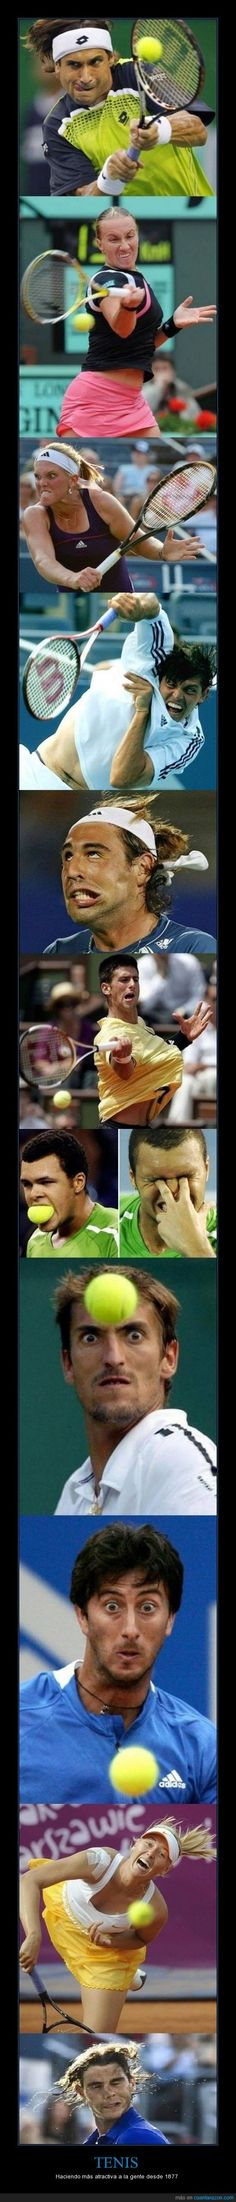 Tennis players are hot. Don't deny it.